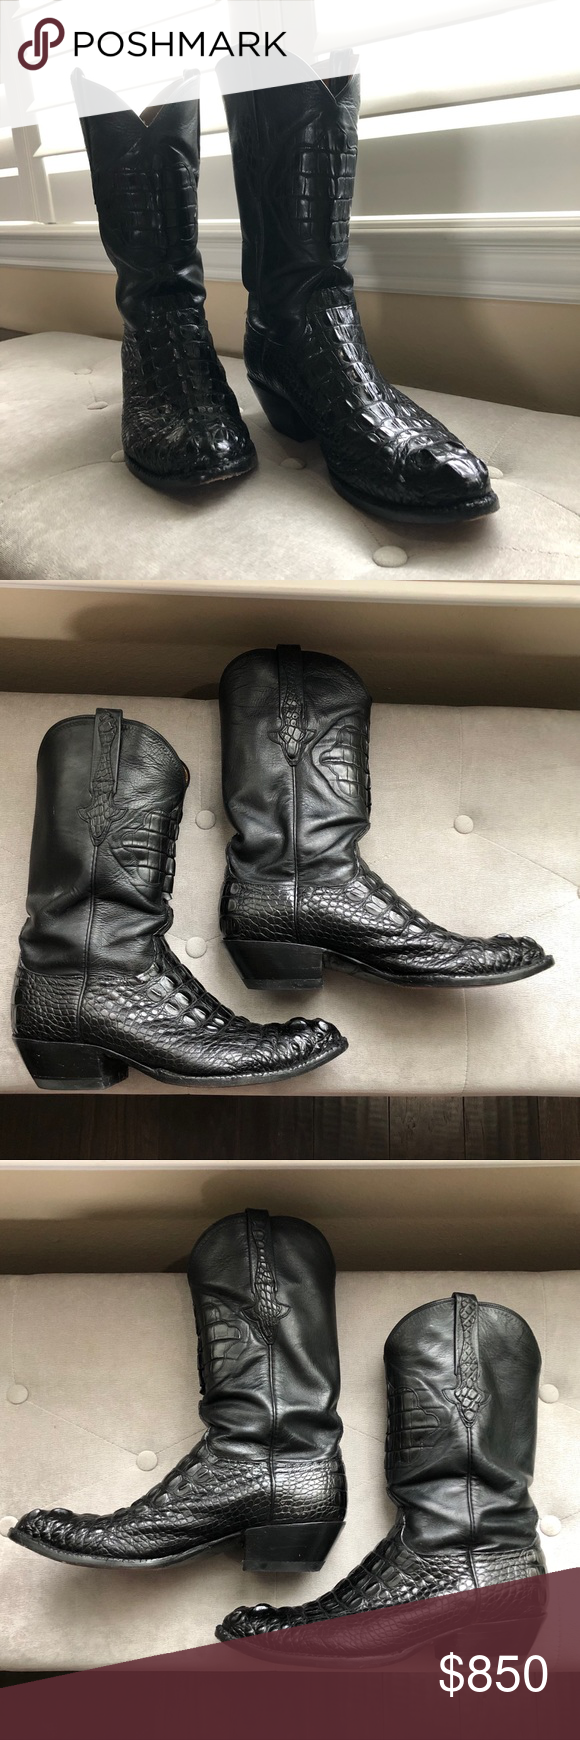 Handmade Lucchese Alligator Hornback Boots Brand Lucchese Classics Made In Usa Original Price 3 025 00 Style Number L1013 Co My Posh Picks In 2019 Boots Western Boots Selling On Poshmark